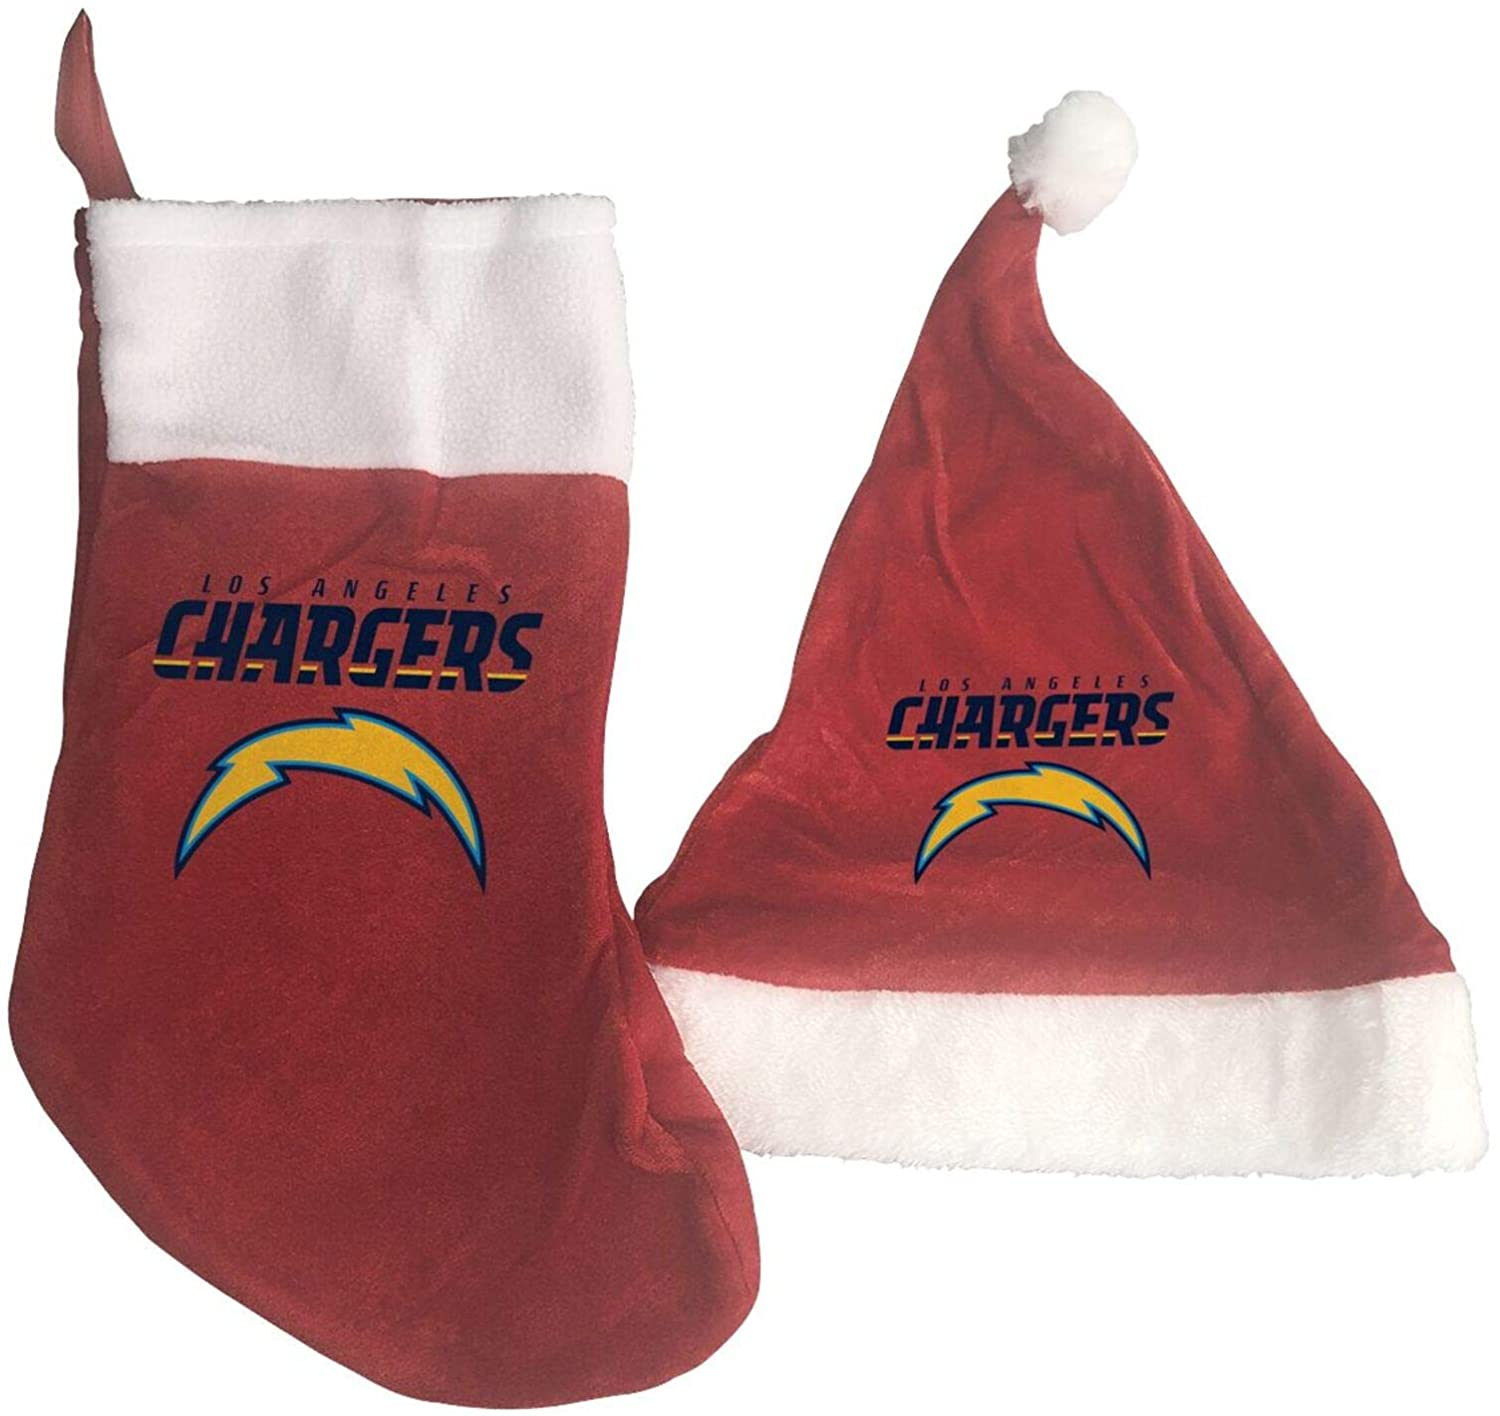 Sneakersssa Los Angeles football Charger Christmas Hat And Christmas Stocking Santa Socks Red Fireplace Hanging Stockings For Ornaments Family Holiday Xmas Party Decorations